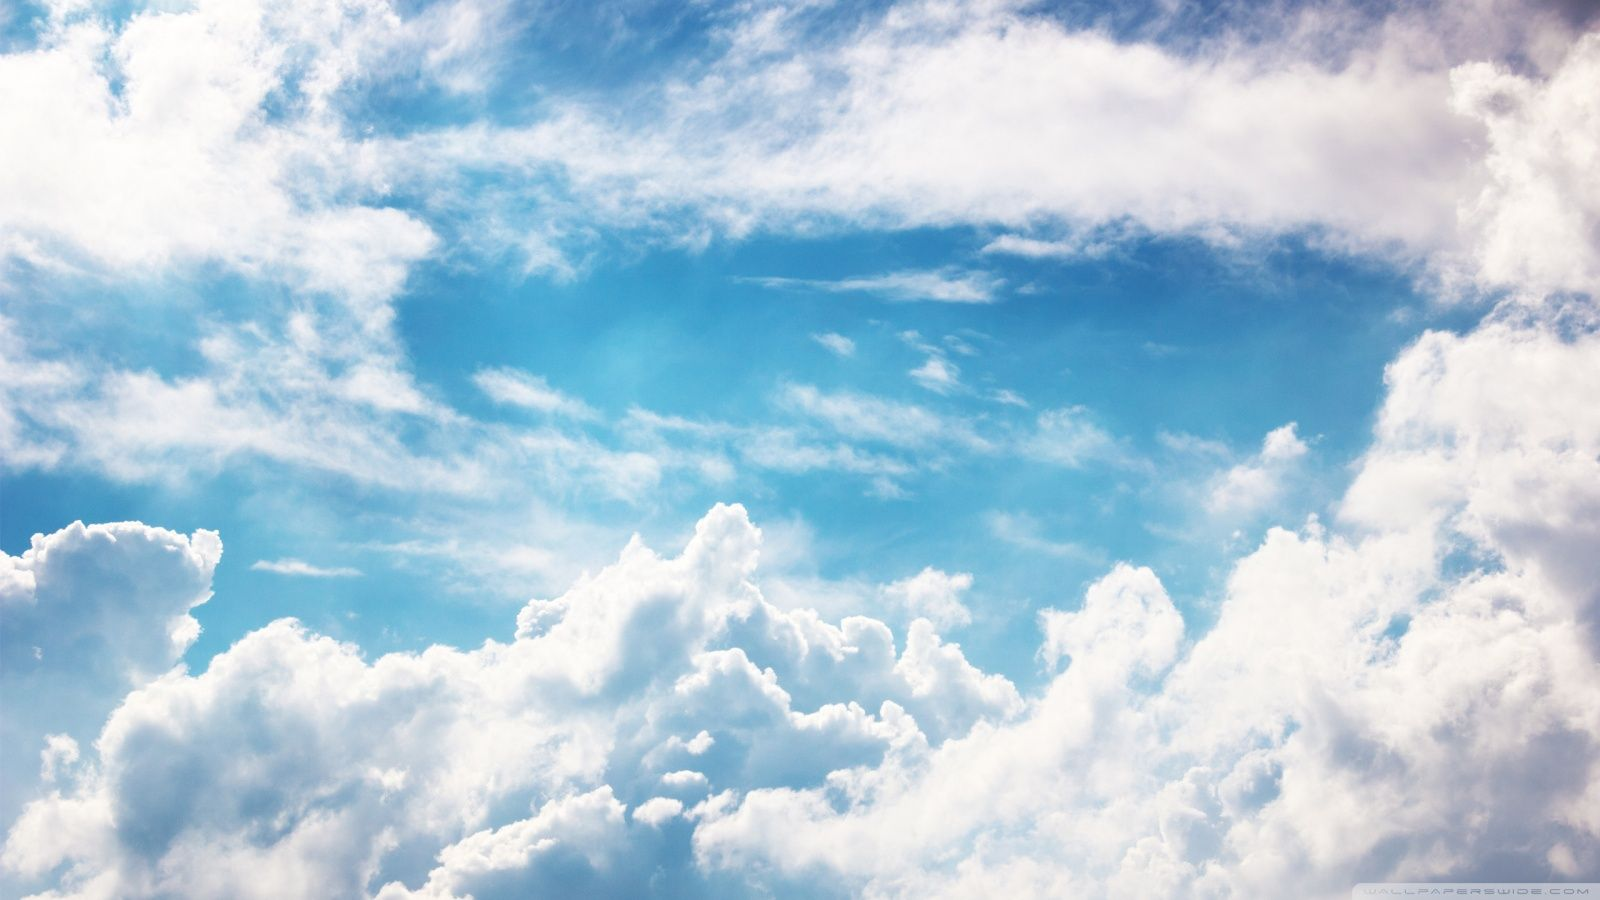 12x12 Sky Wallpapers   Top Free 12x12 Sky Backgrounds ...